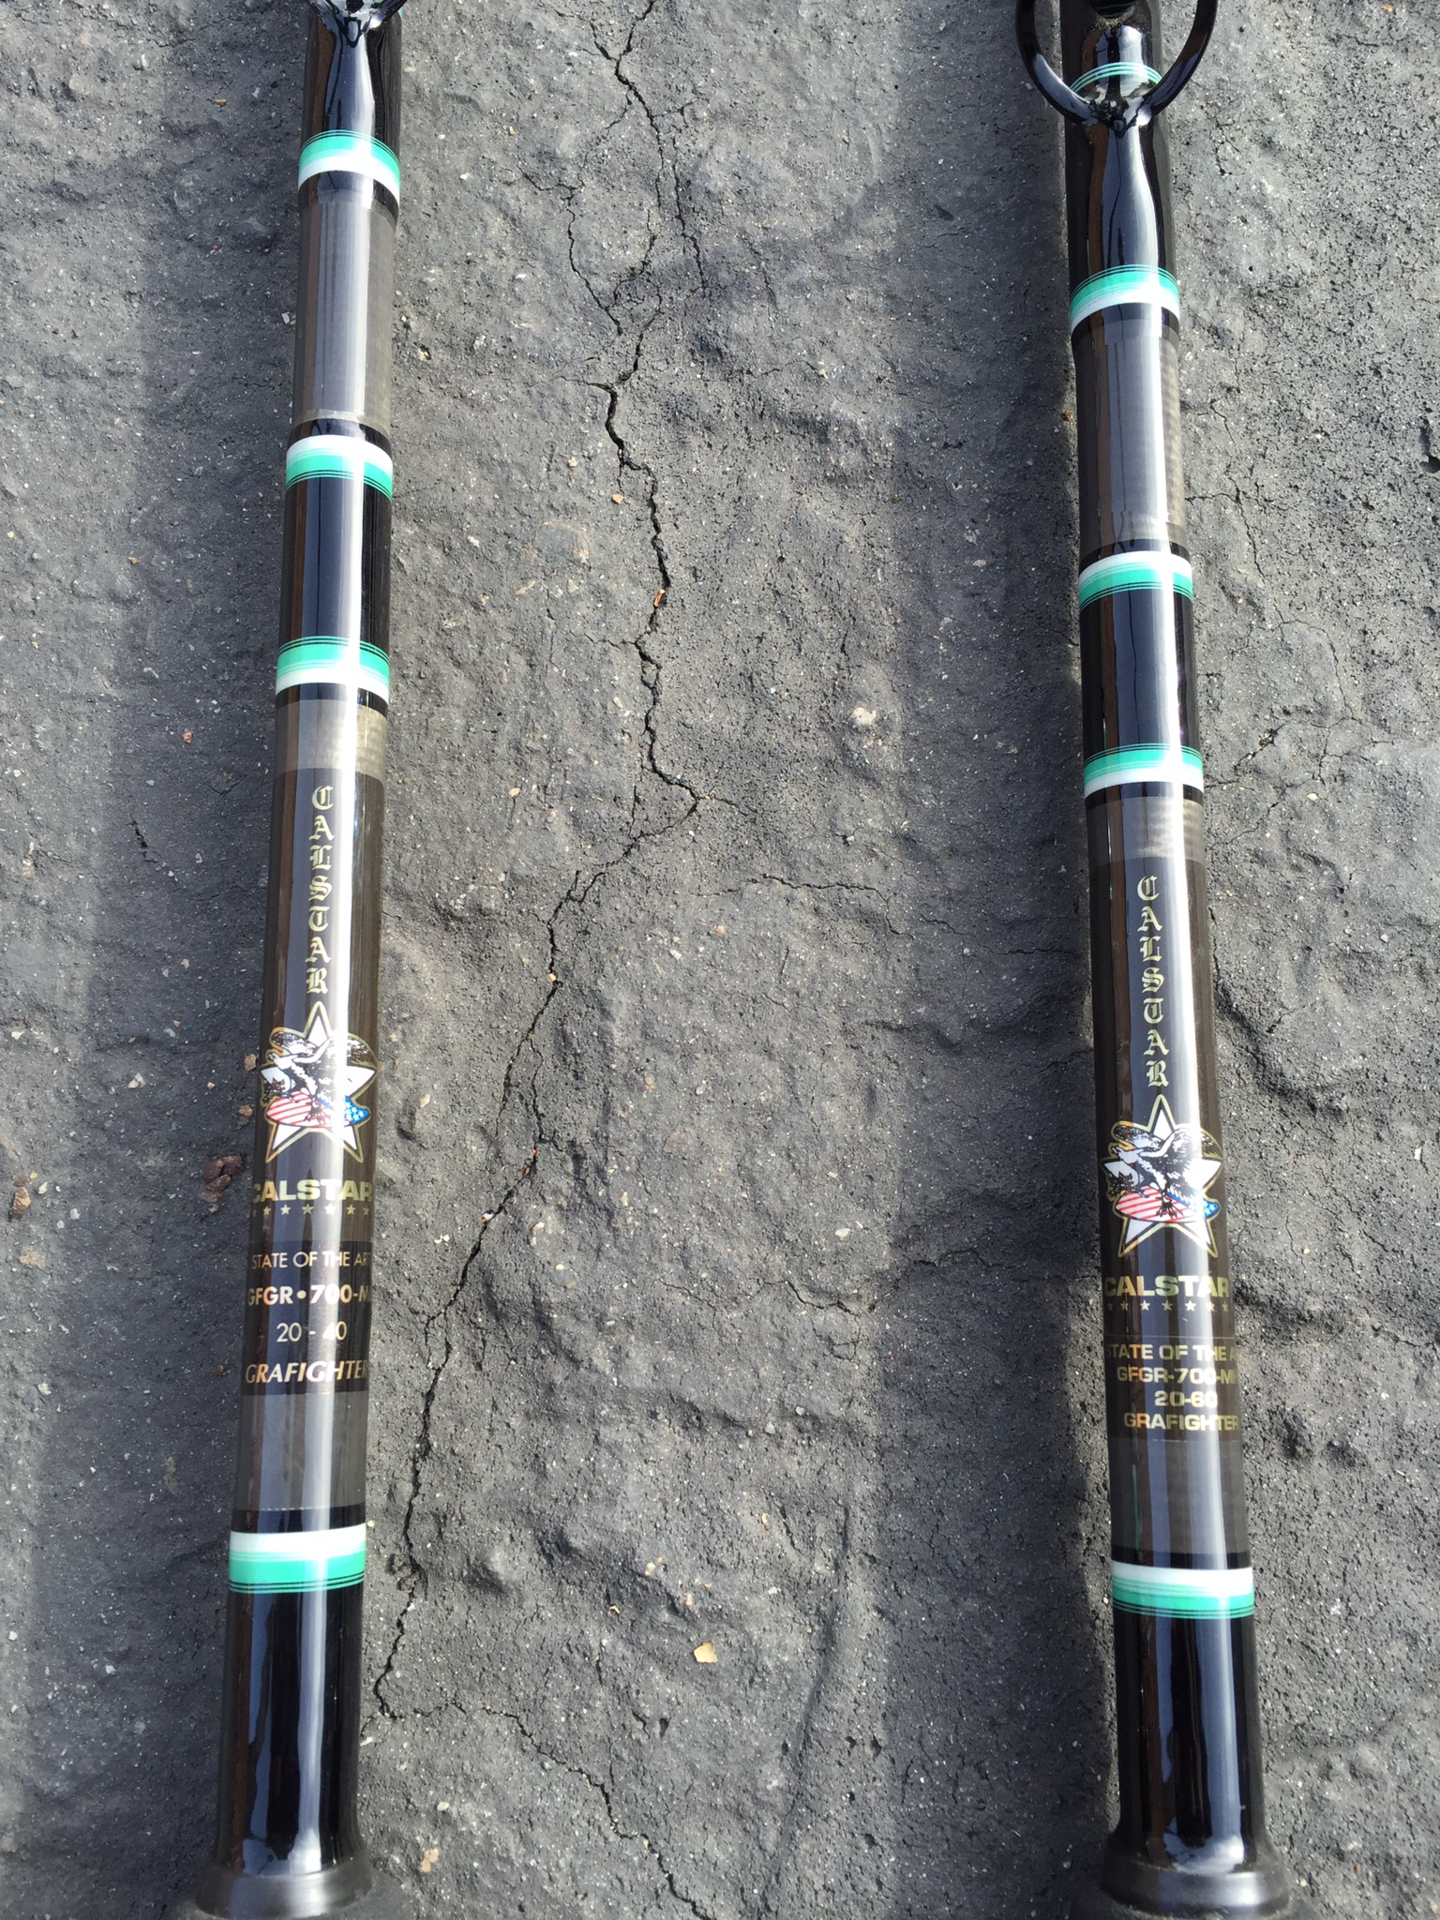 Wts calstar and phenix rod saltwater fishing forums for Calstar fishing rods